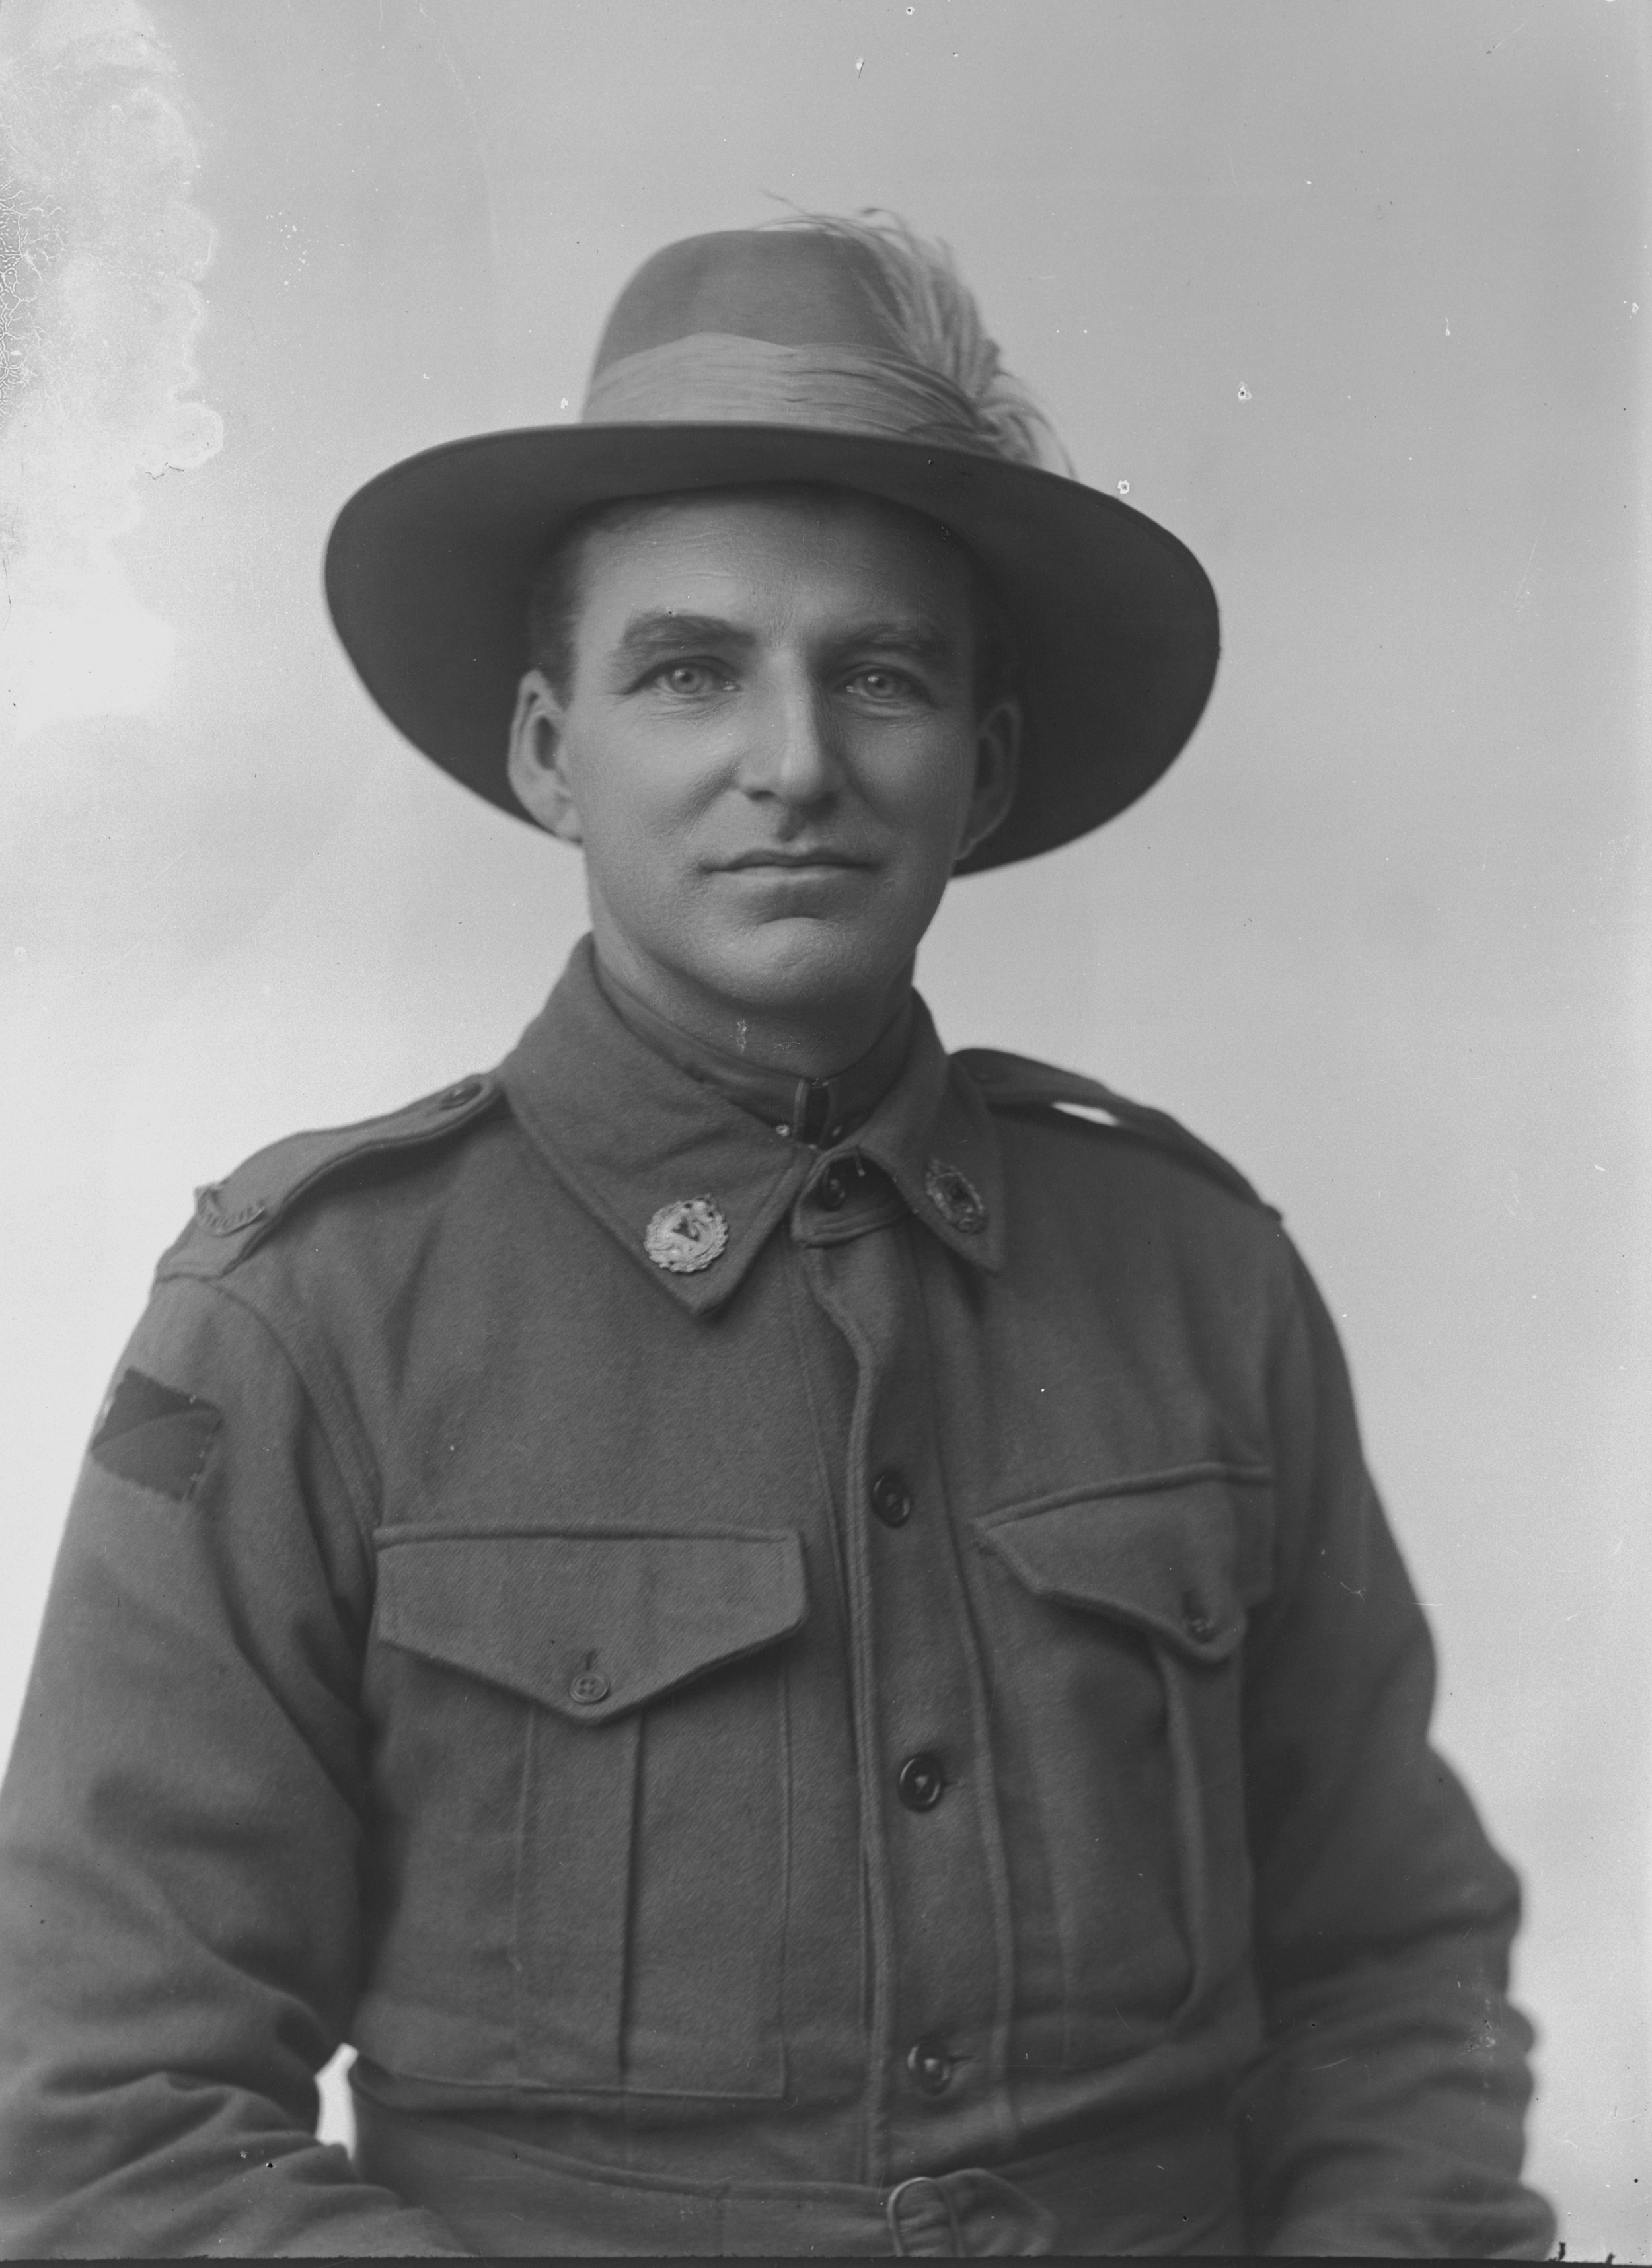 Photographed at the Dease Studio, 117 Barrack Street Perth WA Image courtesy of the State Library of Western Australia: 108222PD